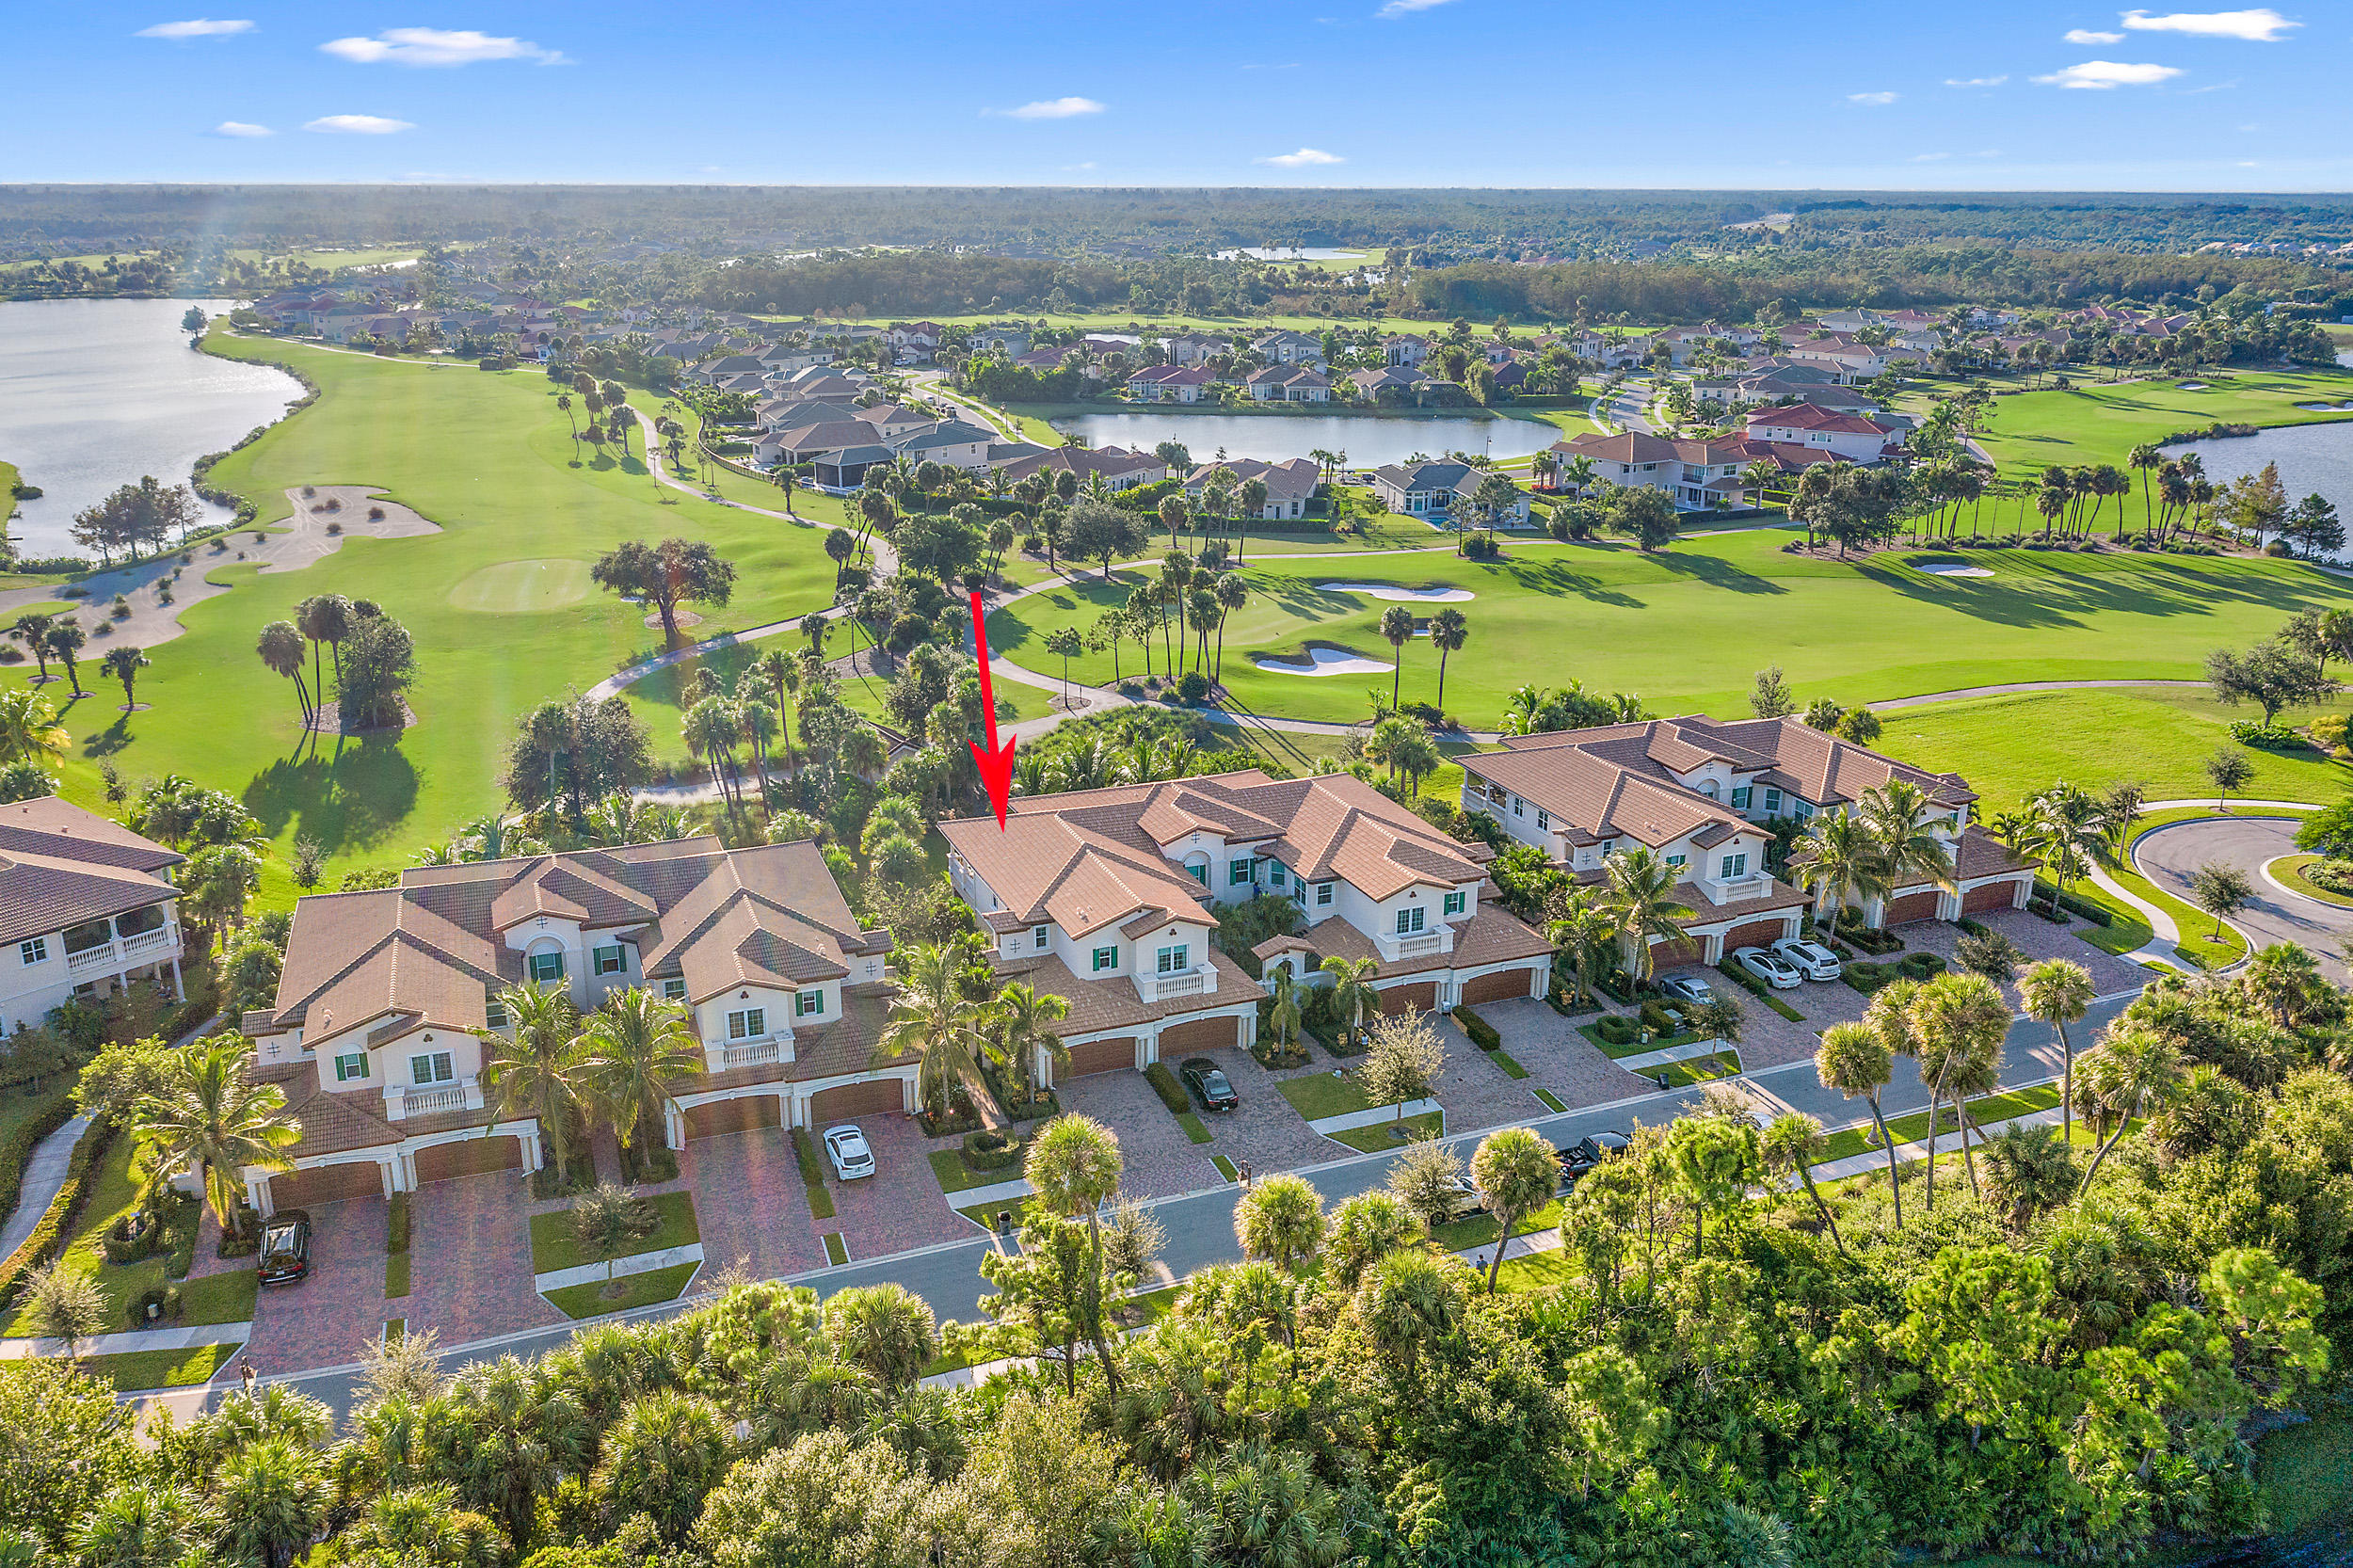 New Home for sale at 191 Tresana Boulevard in Jupiter